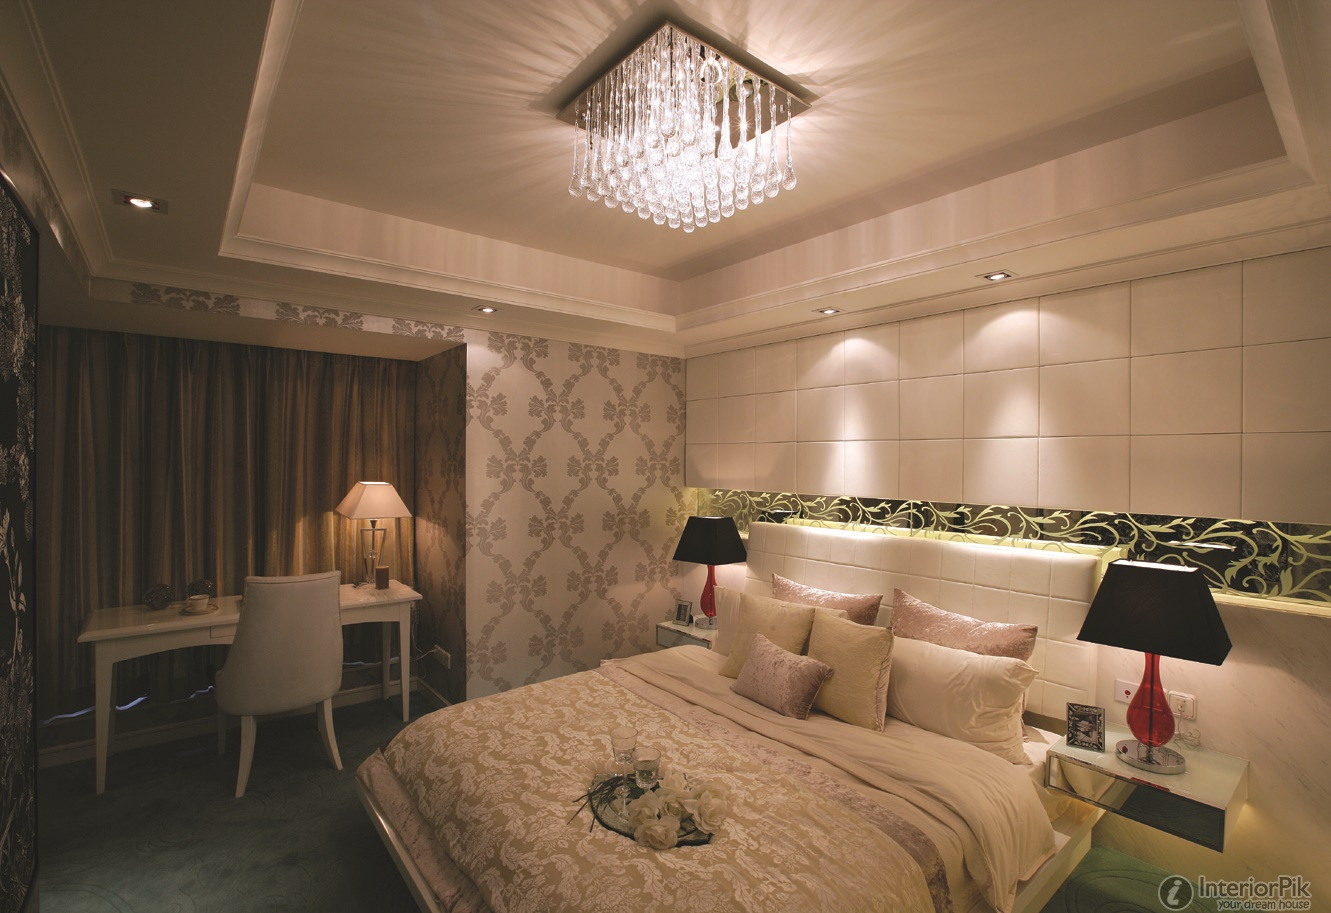 Modern Bedroom Ceiling Lights Wonderful Bedroom Ceiling Lights within Modern Bedroom Ceiling Lights